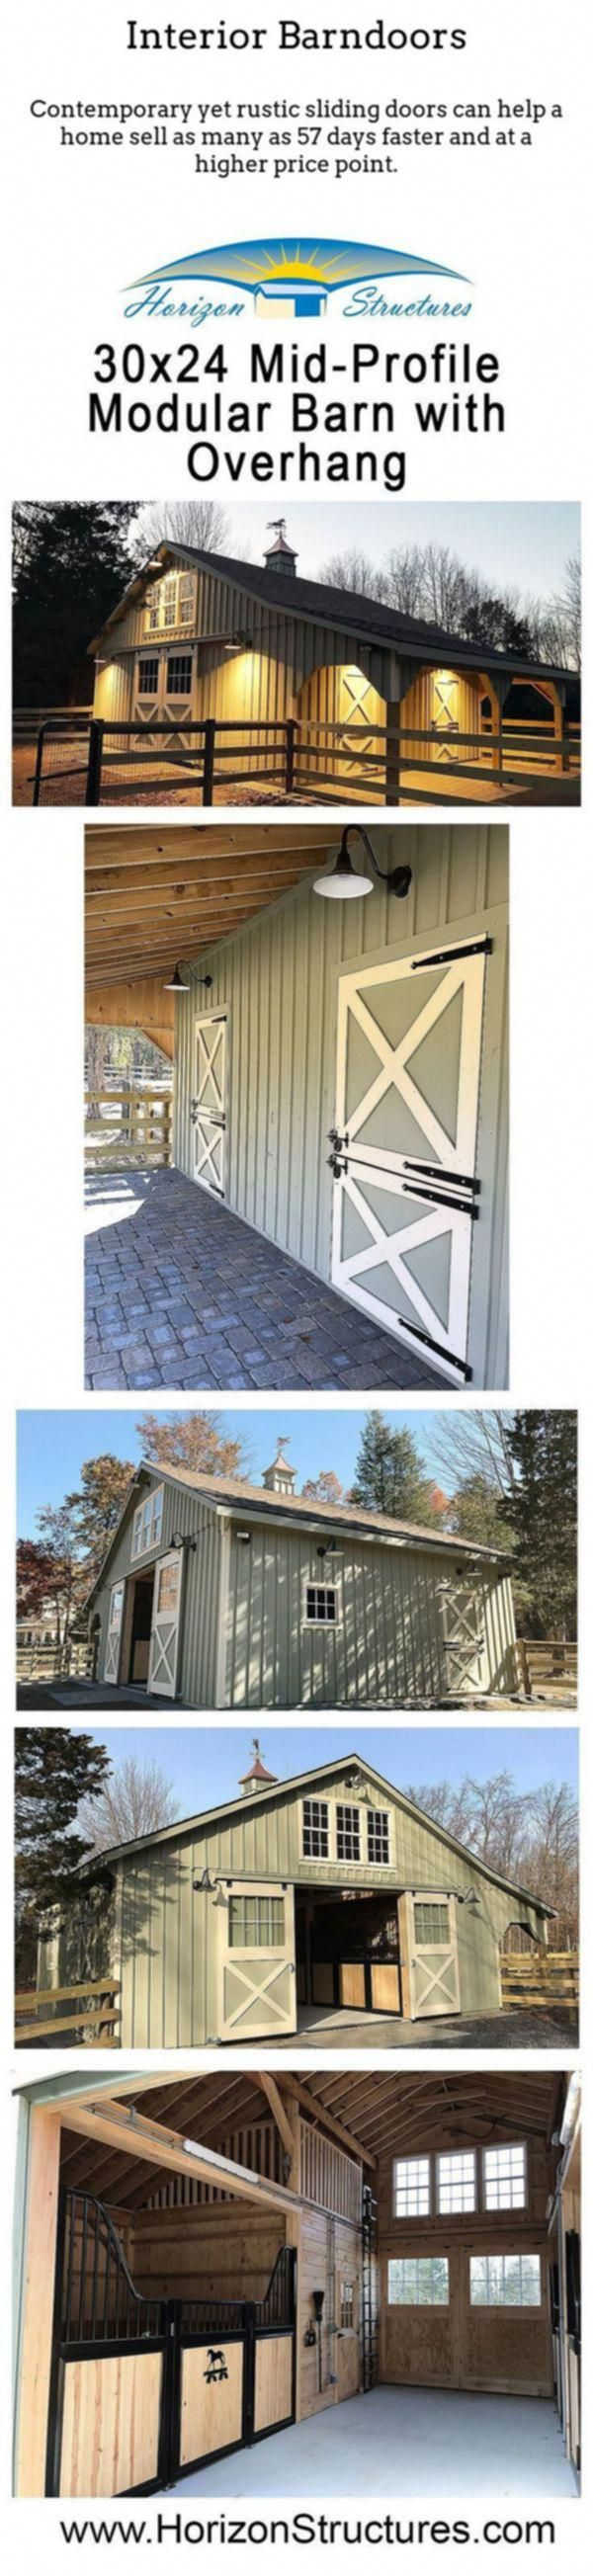 Hanging sliding doors exterior barn doors for sale barn style